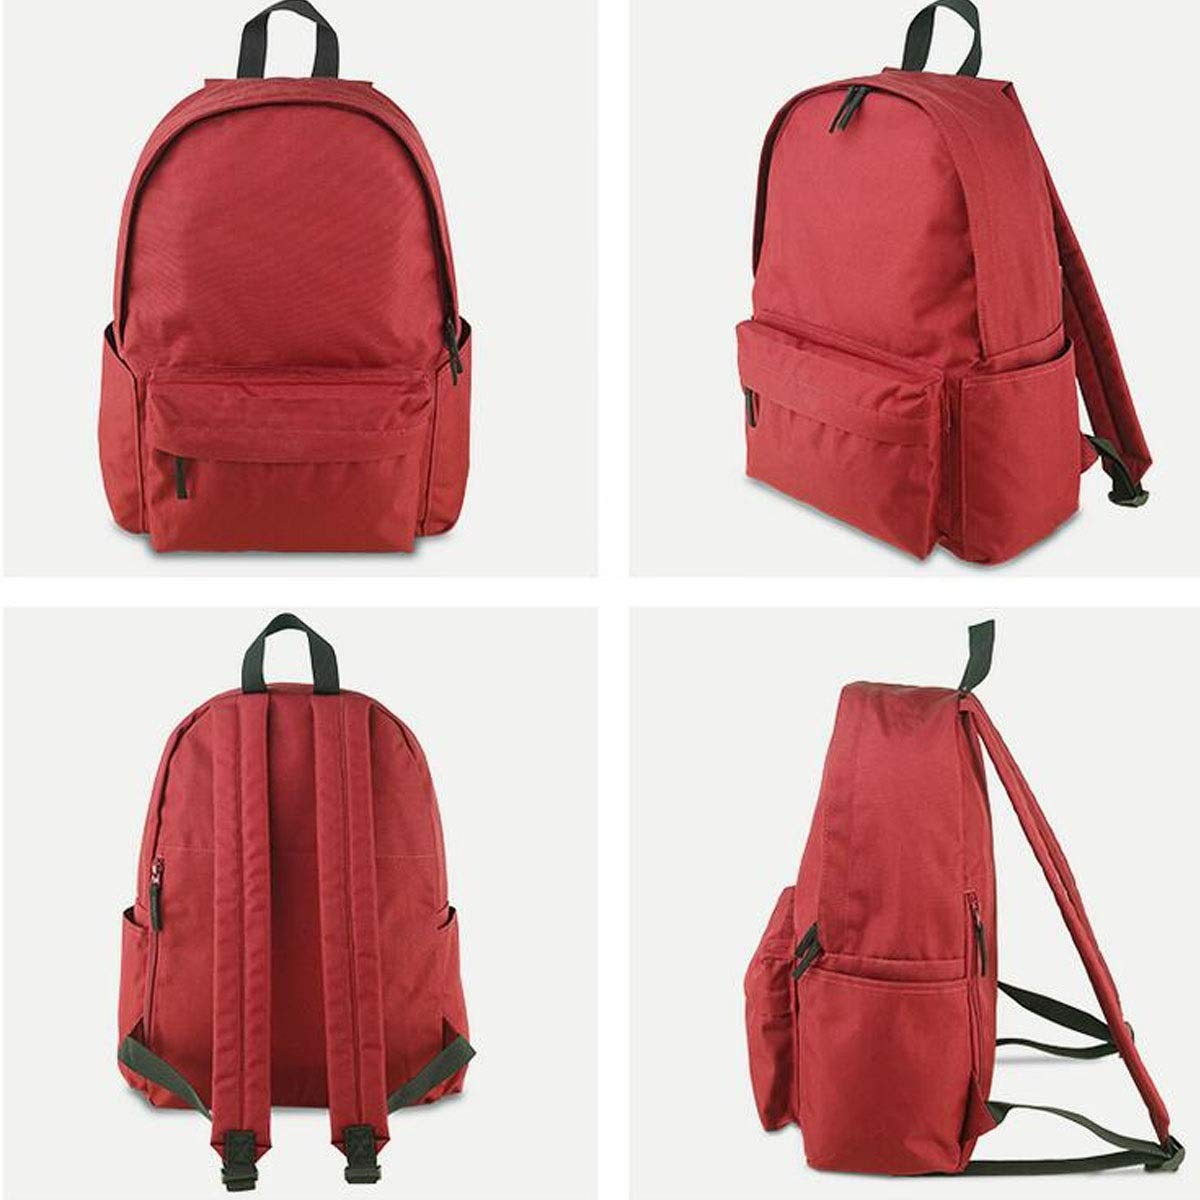 Womens Fashion Oxford Folding Backpack Chenjinxiang01 Solid Color Backpack Bag red, Blue, Black, White, Green, Gray Color : Pink